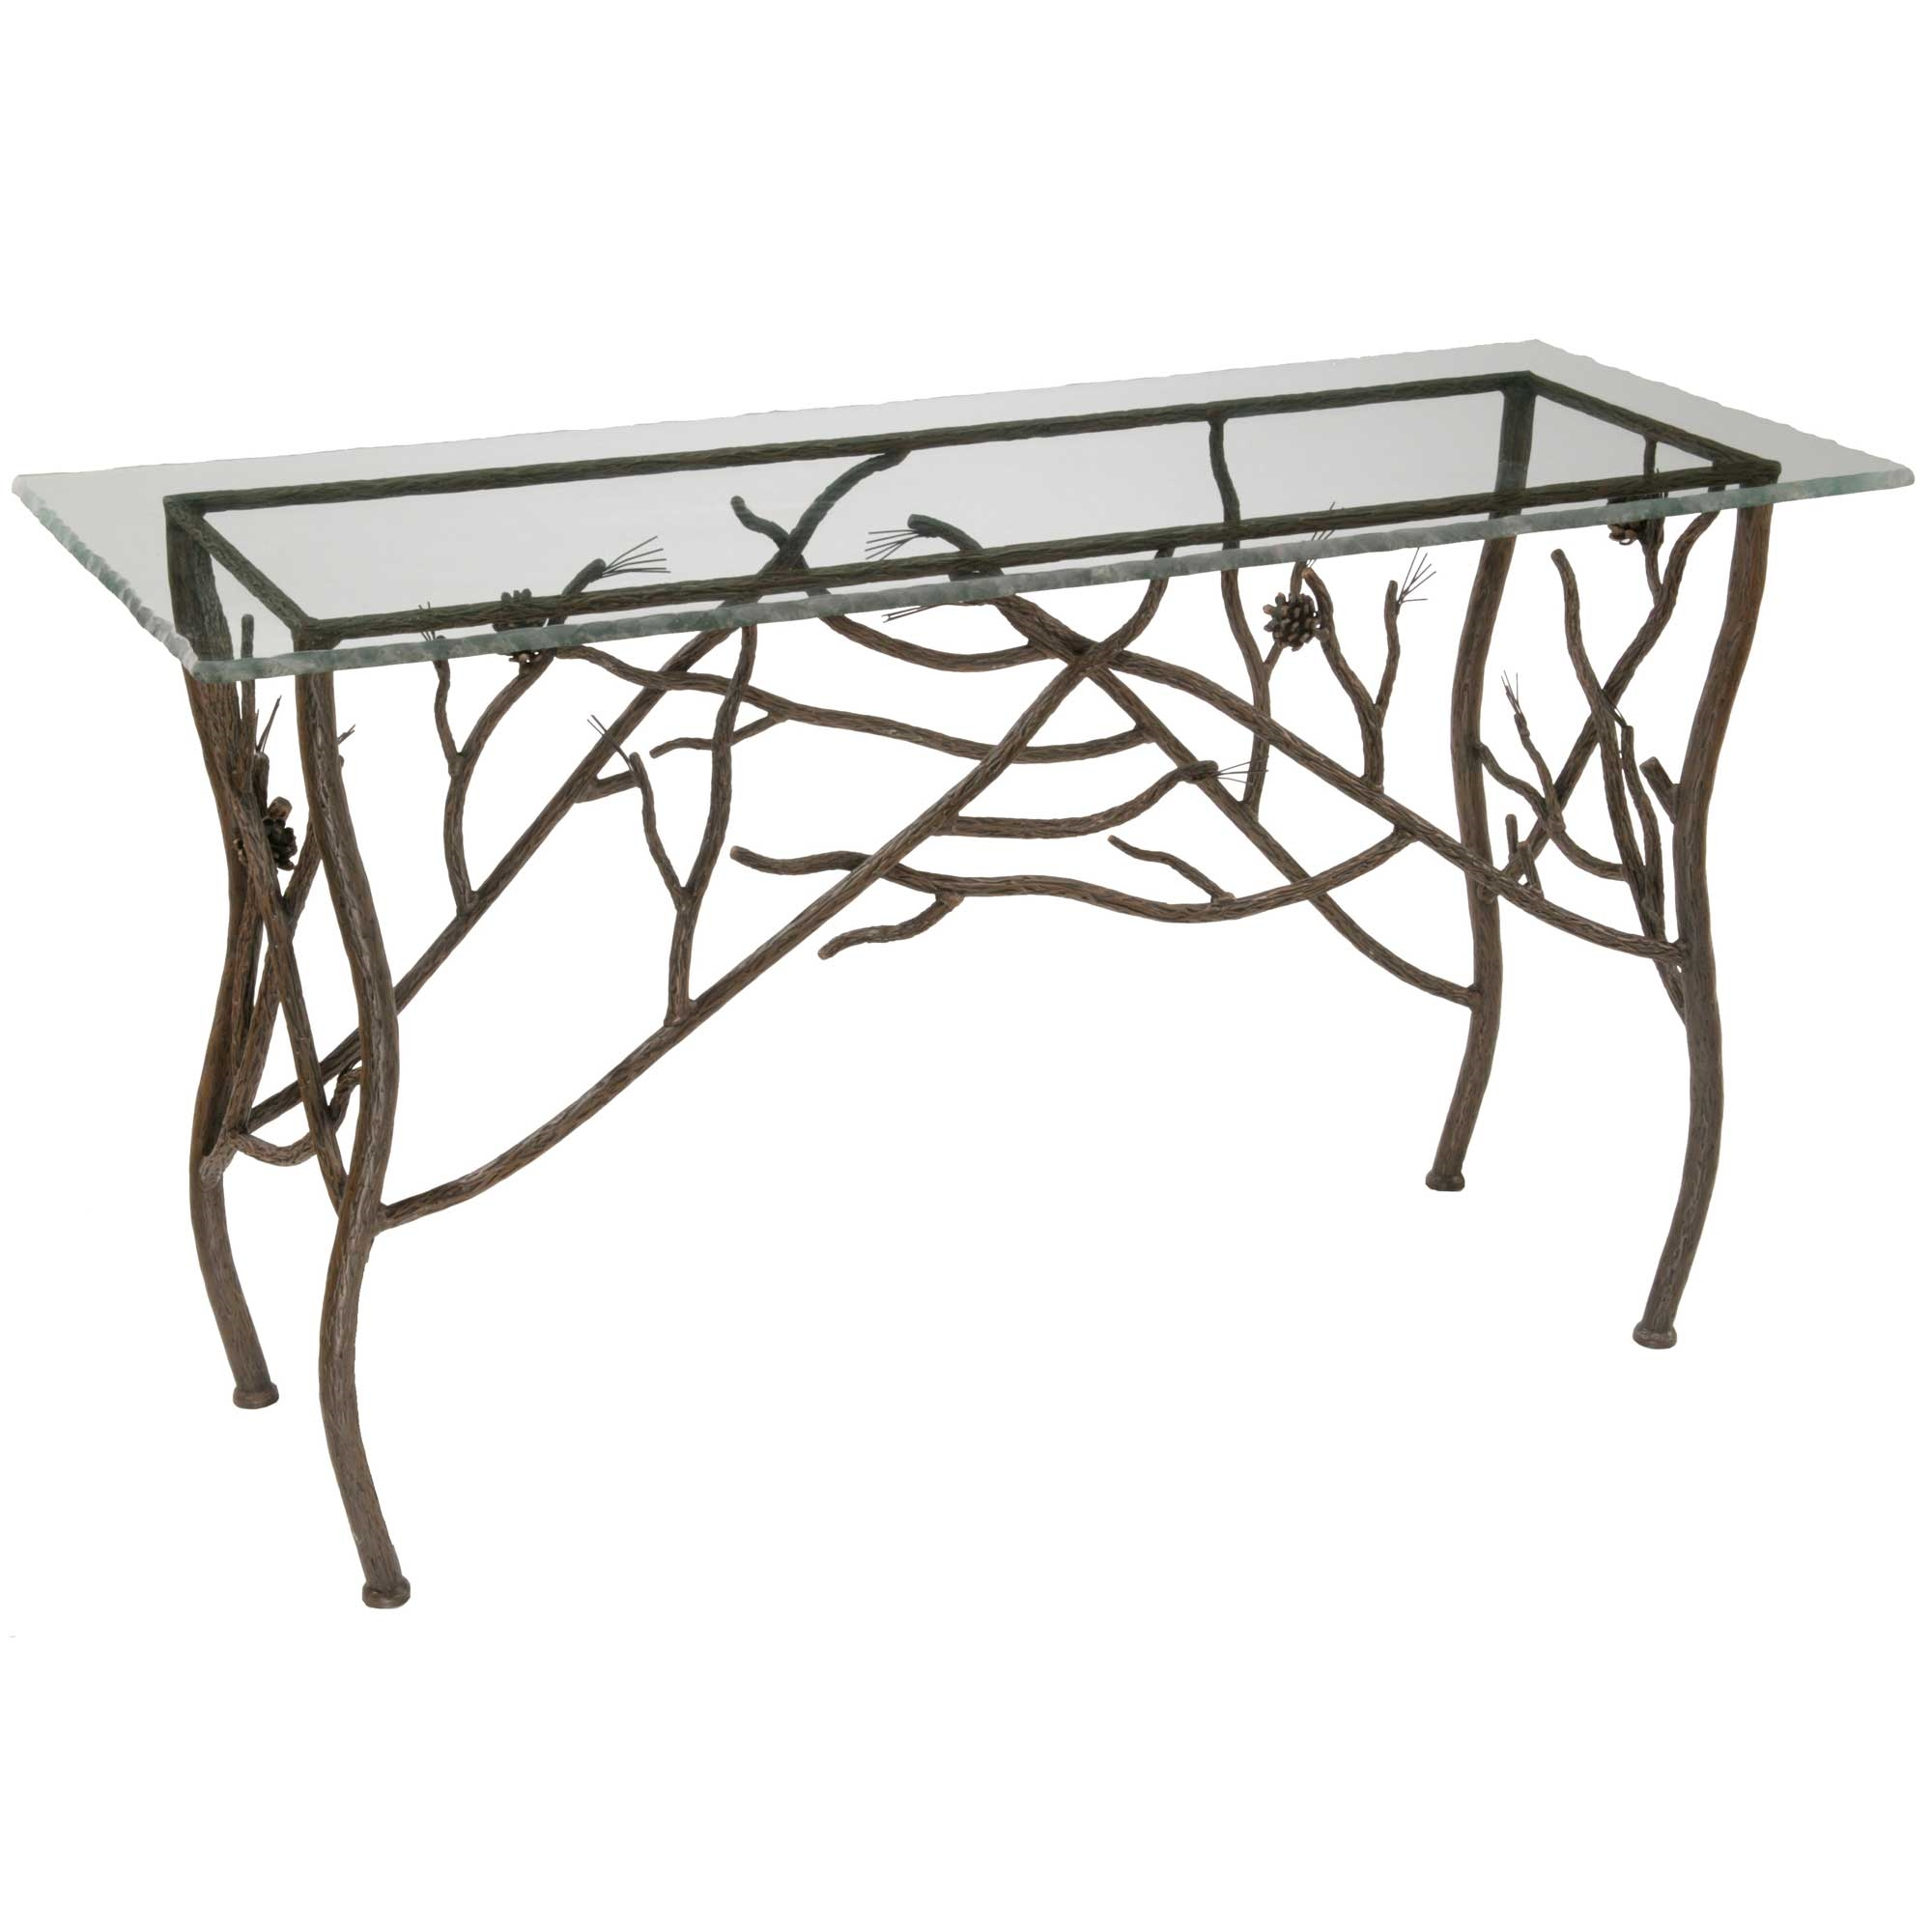 Rustic pine console table Metal console table